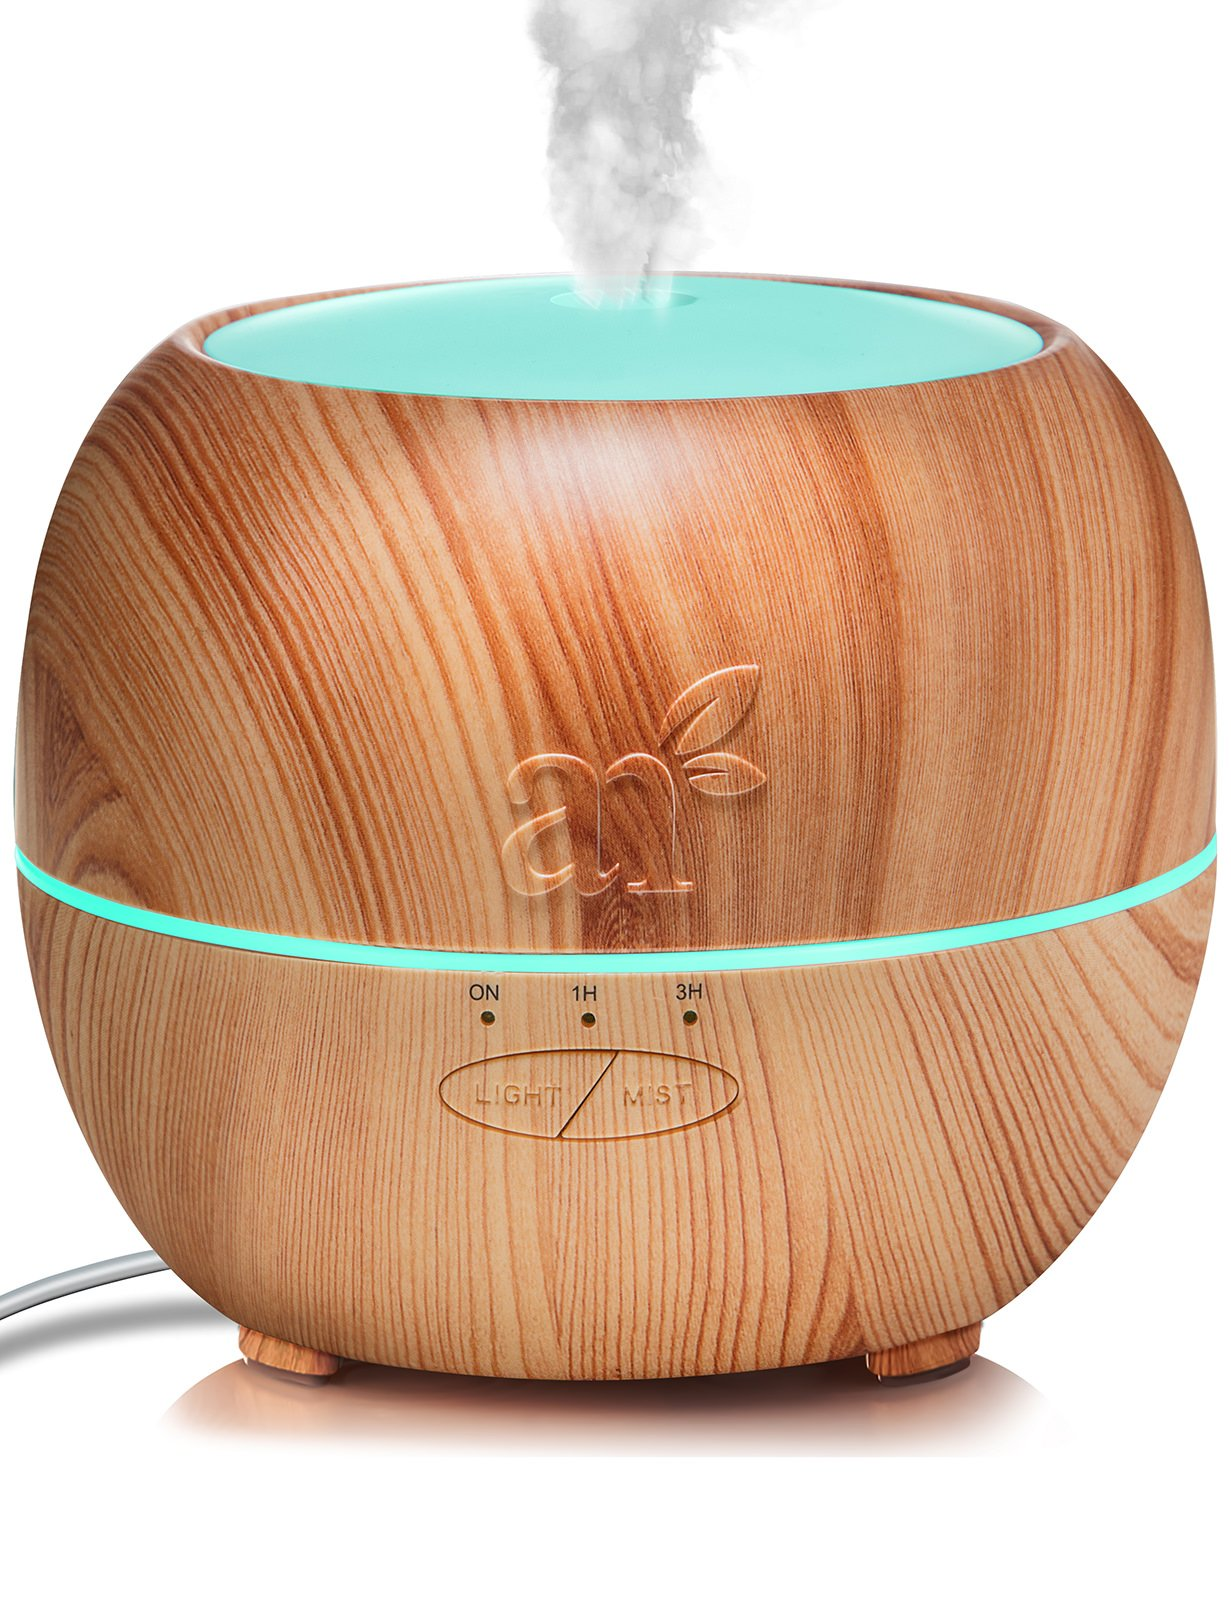 ArtNaturals Aromatherapy Essential Oil Diffuser - (5.0 Fl Oz / 150ml Tank) - Ultrasonic Aroma Humidifier - Adjustable Mist Mode, Auto Shut-Off and 7 Color LED Lights - For Home, Office & Bedroom by ArtNaturals